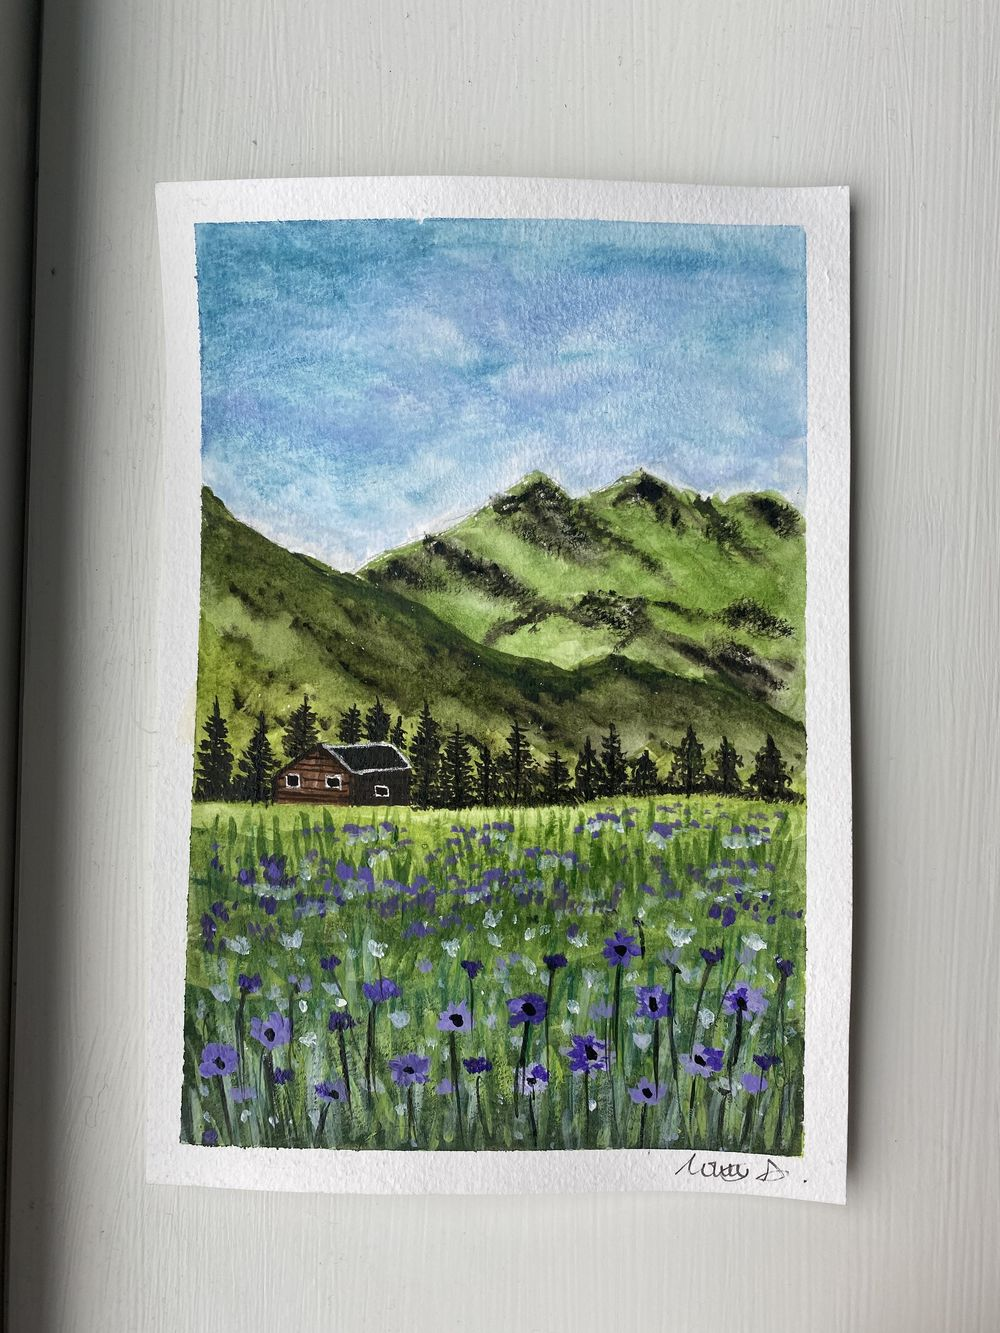 Violet Meadow and Red Blooms - image 2 - student project